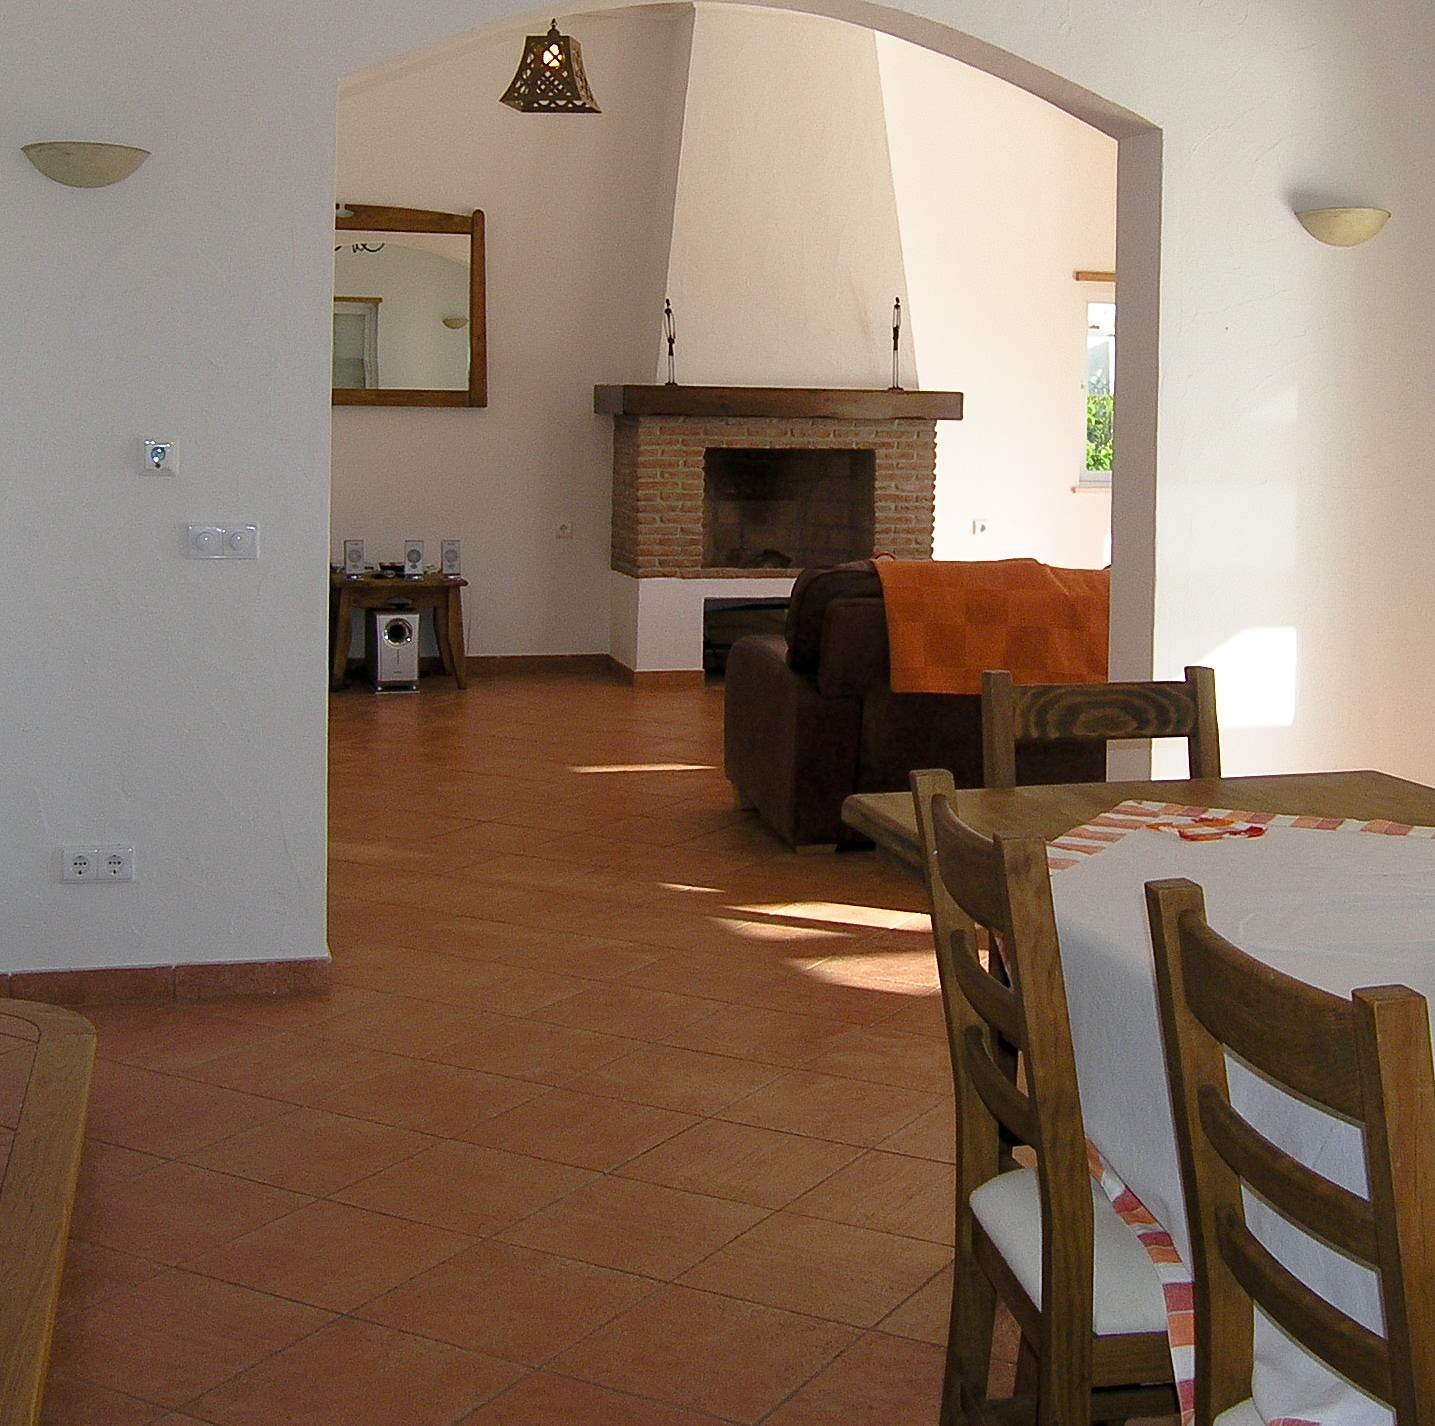 Martinhal Luxury Villa No.10, Three Bedroom Villa, 3 bedroom villa in Martinhal Sagres, Algarve Photo #9